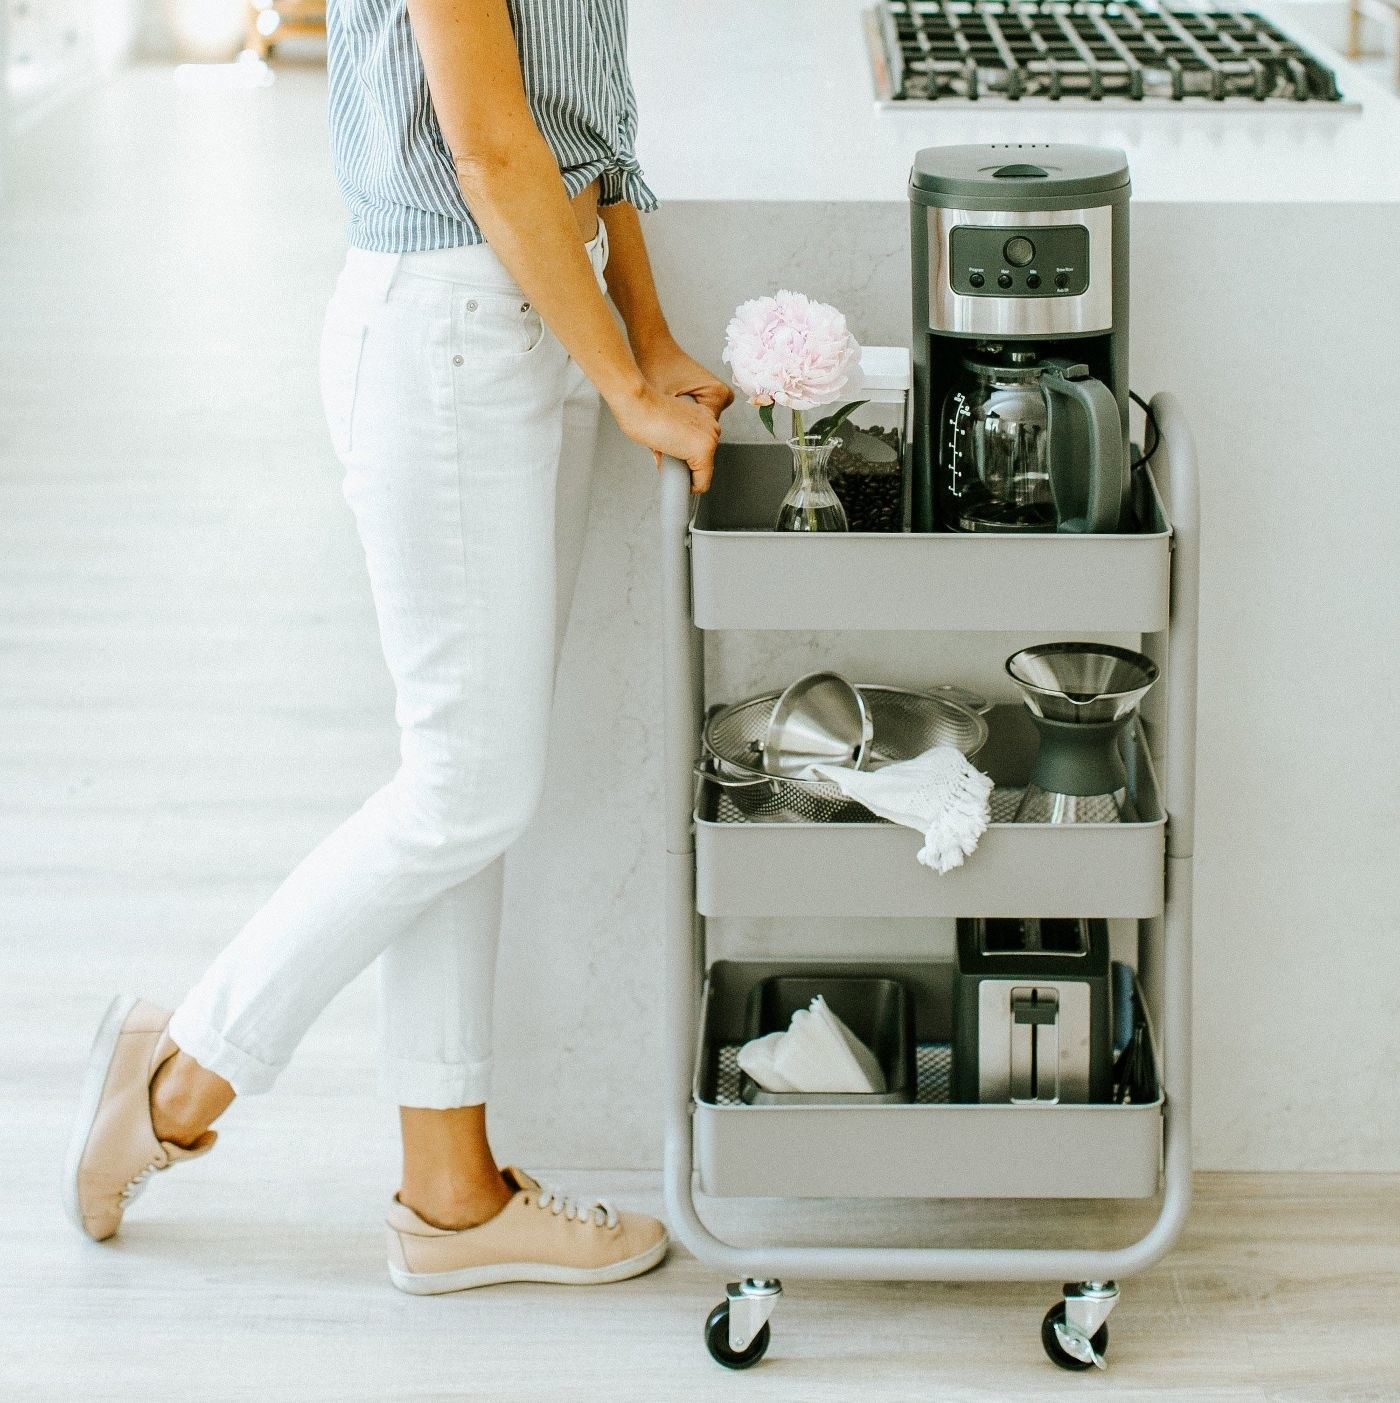 model next to a grey three-tier utility cart with small kitchen appliances on it